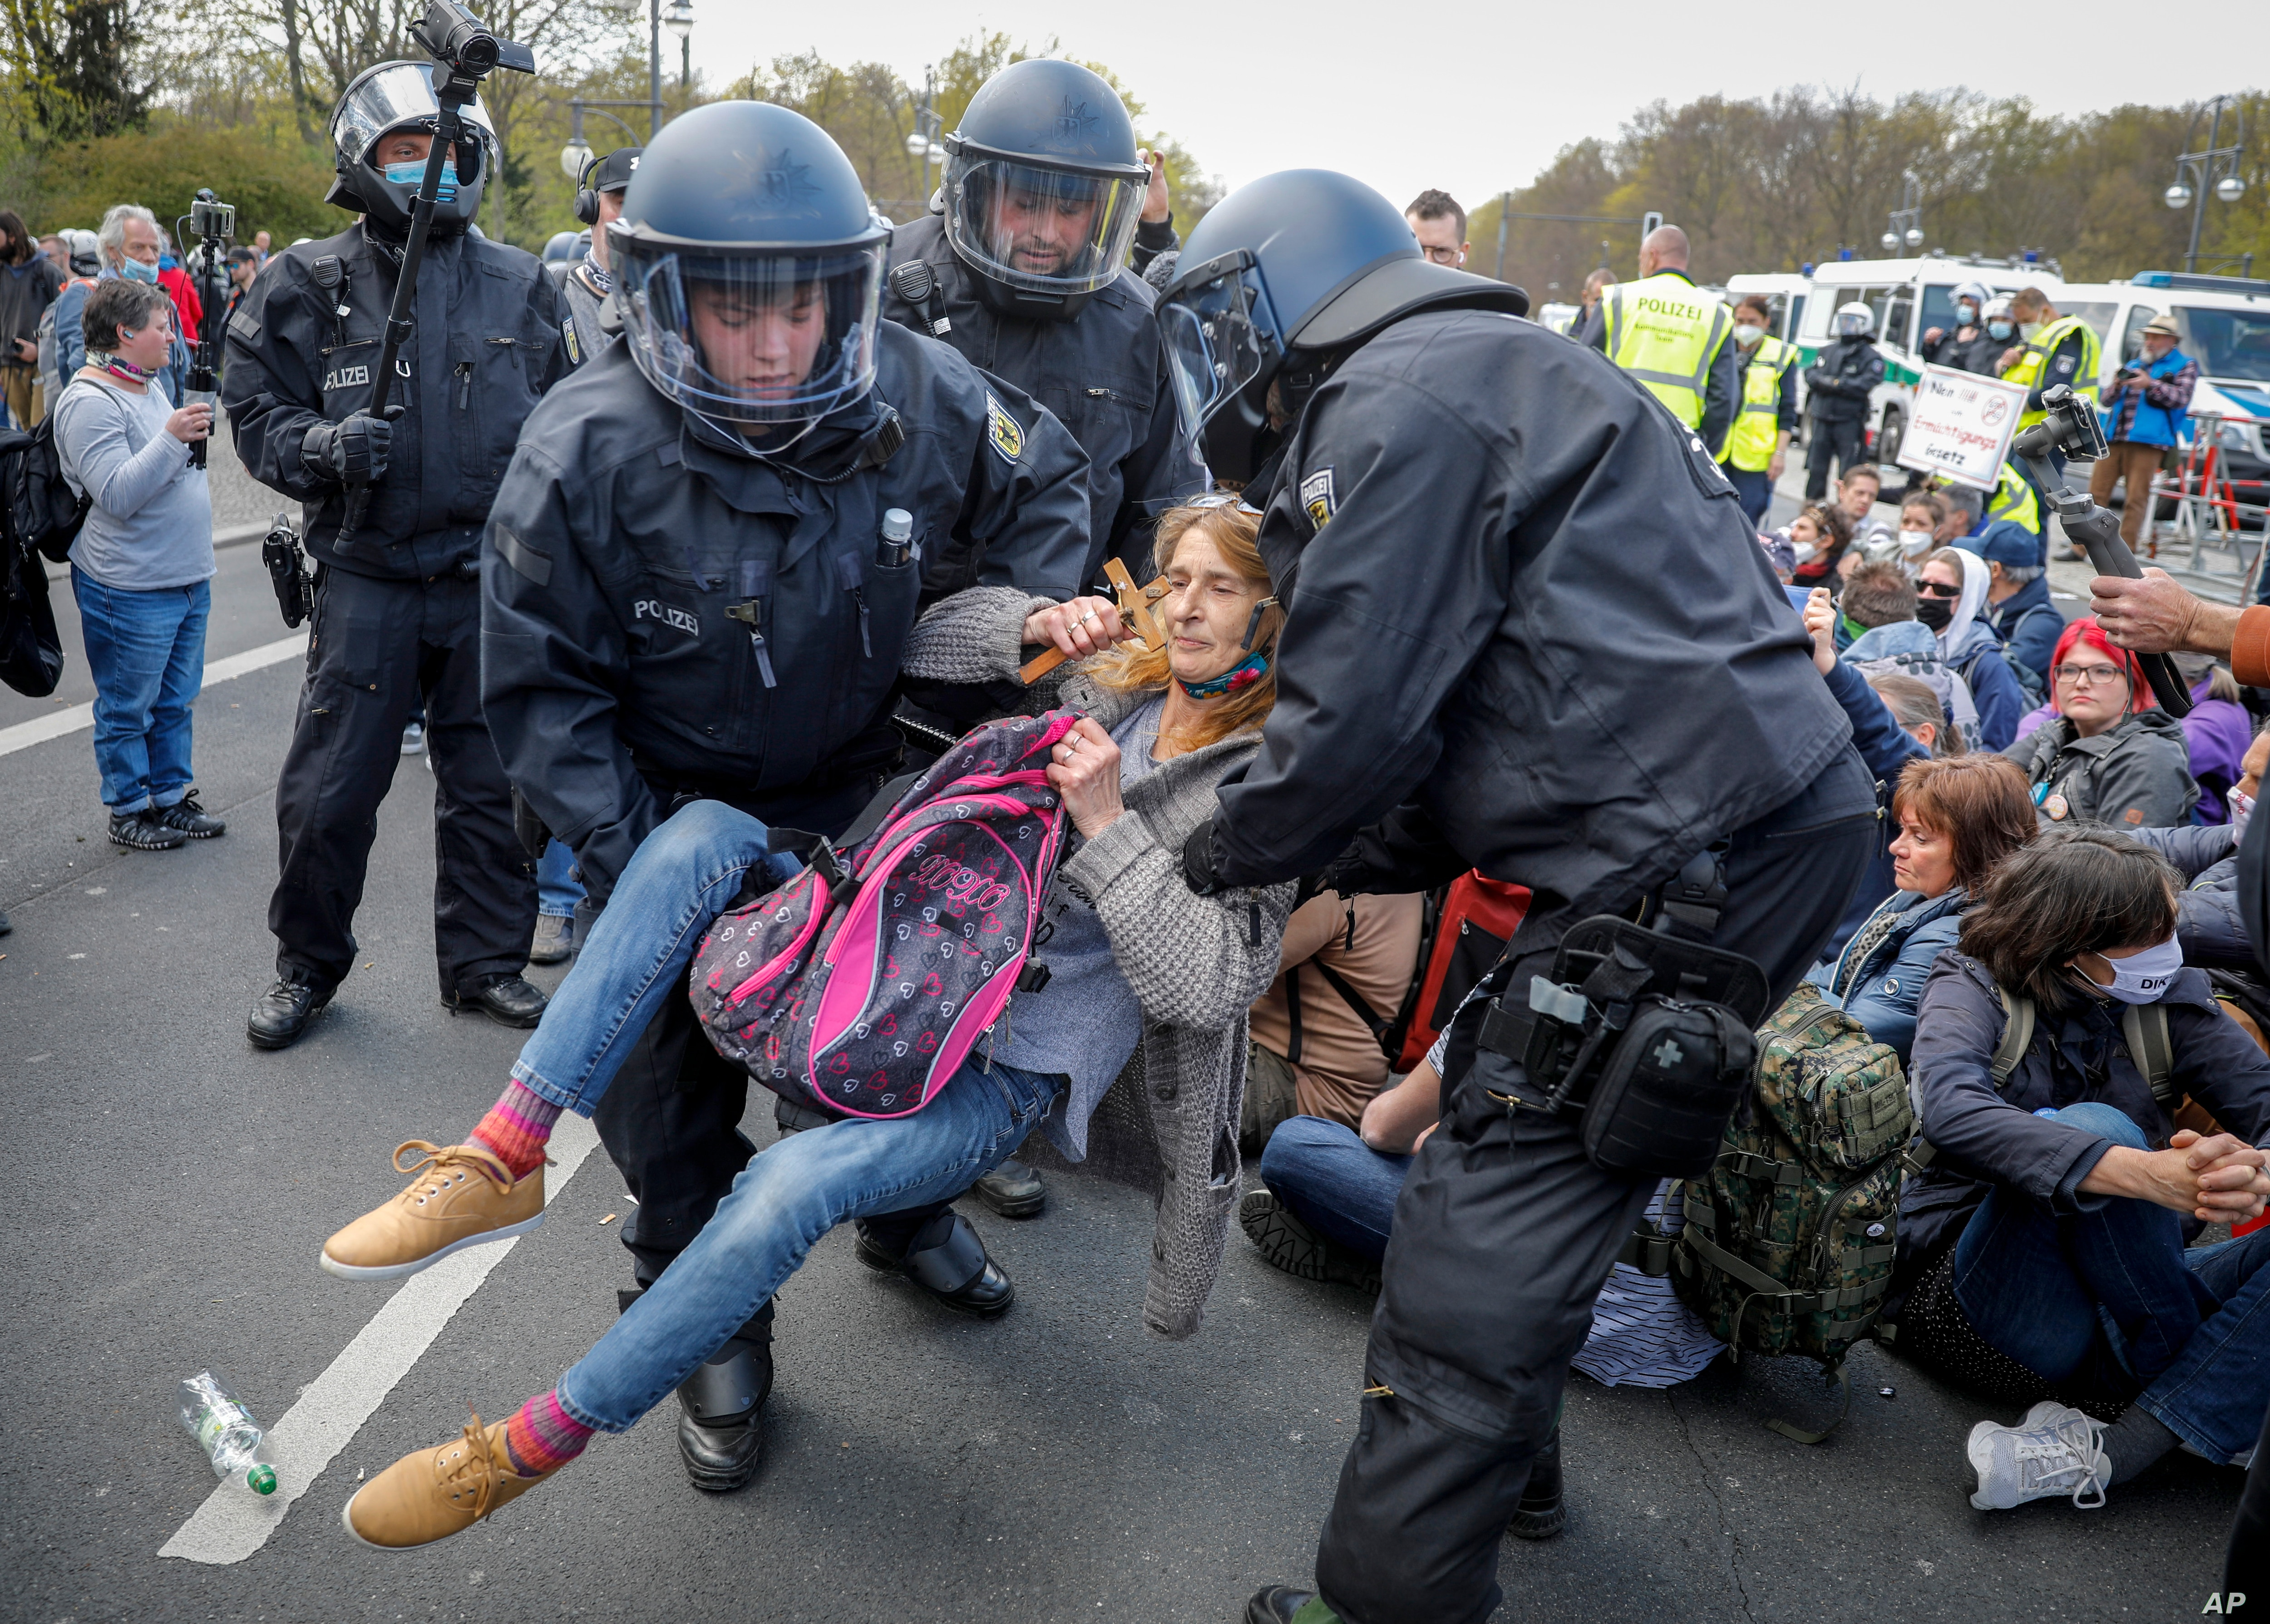 In Germany, 20 Arrested in Protests Over COVID Restrictions ...